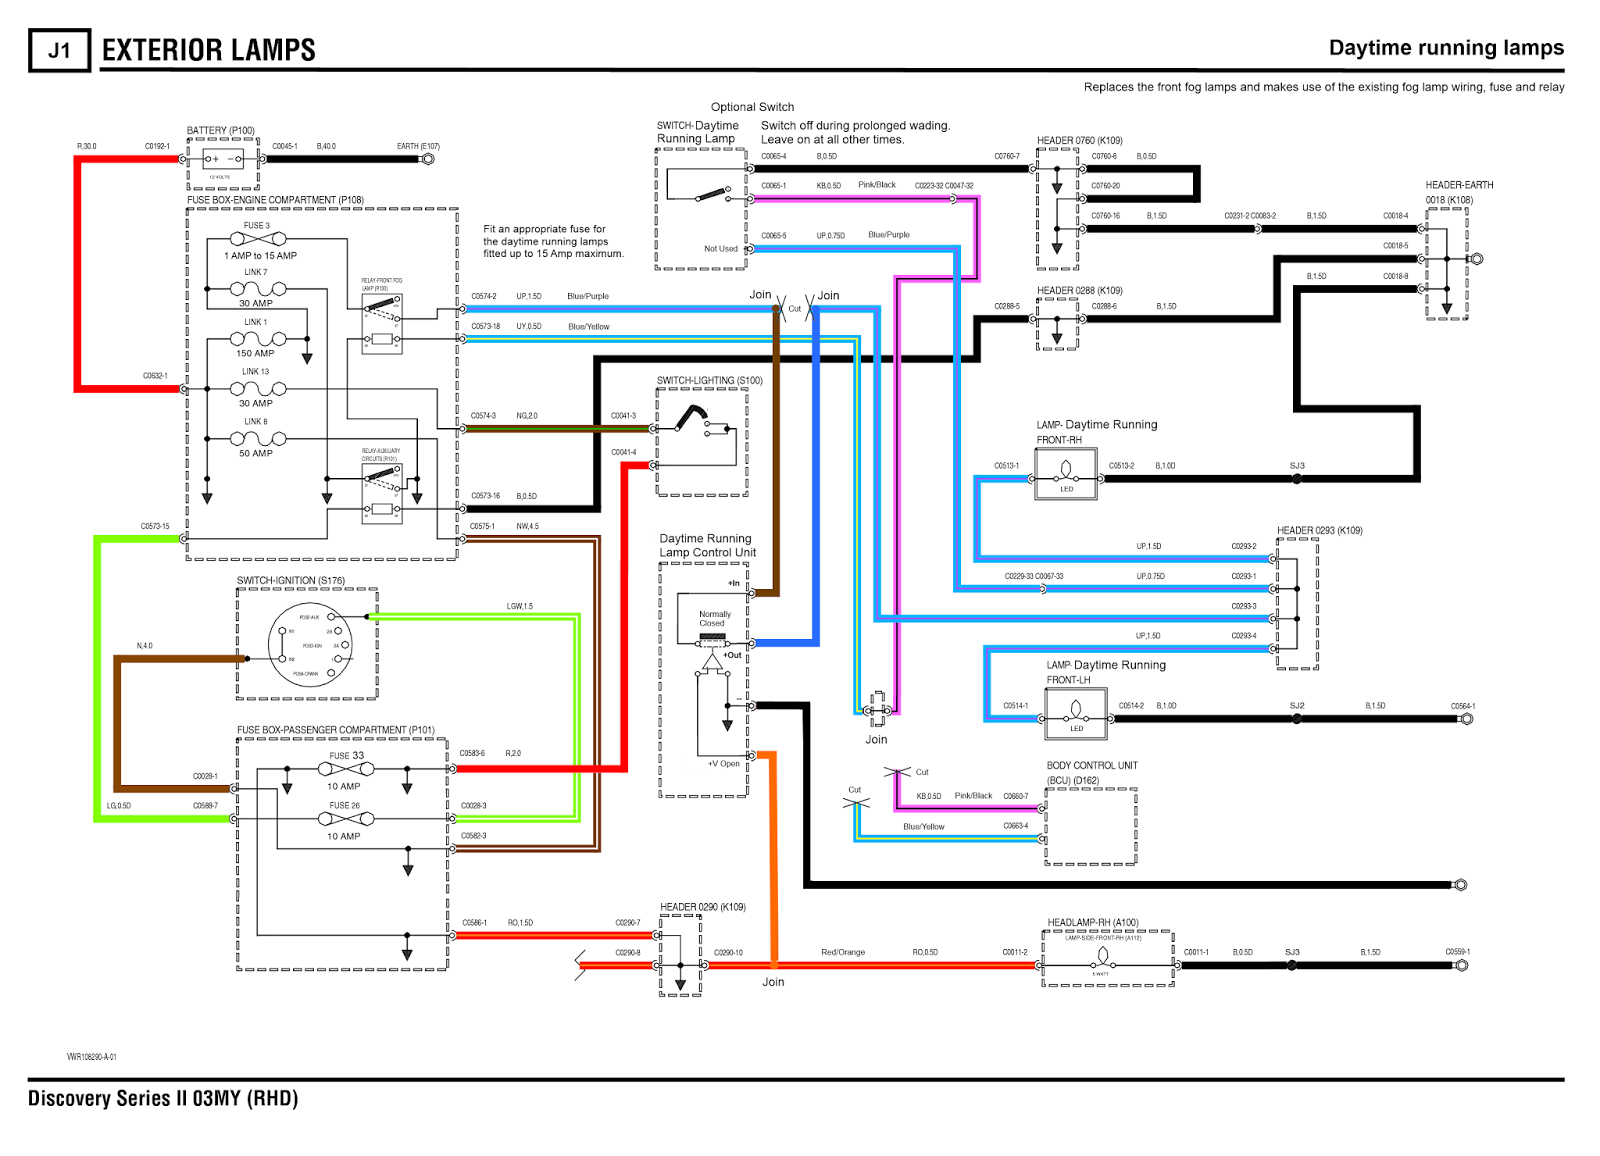 Land rover discovery 1 wiring diagram free somurich land rover discovery 1 wiring diagram free land rover series 3 wiring diagram pdfrh asfbconference2016 Images